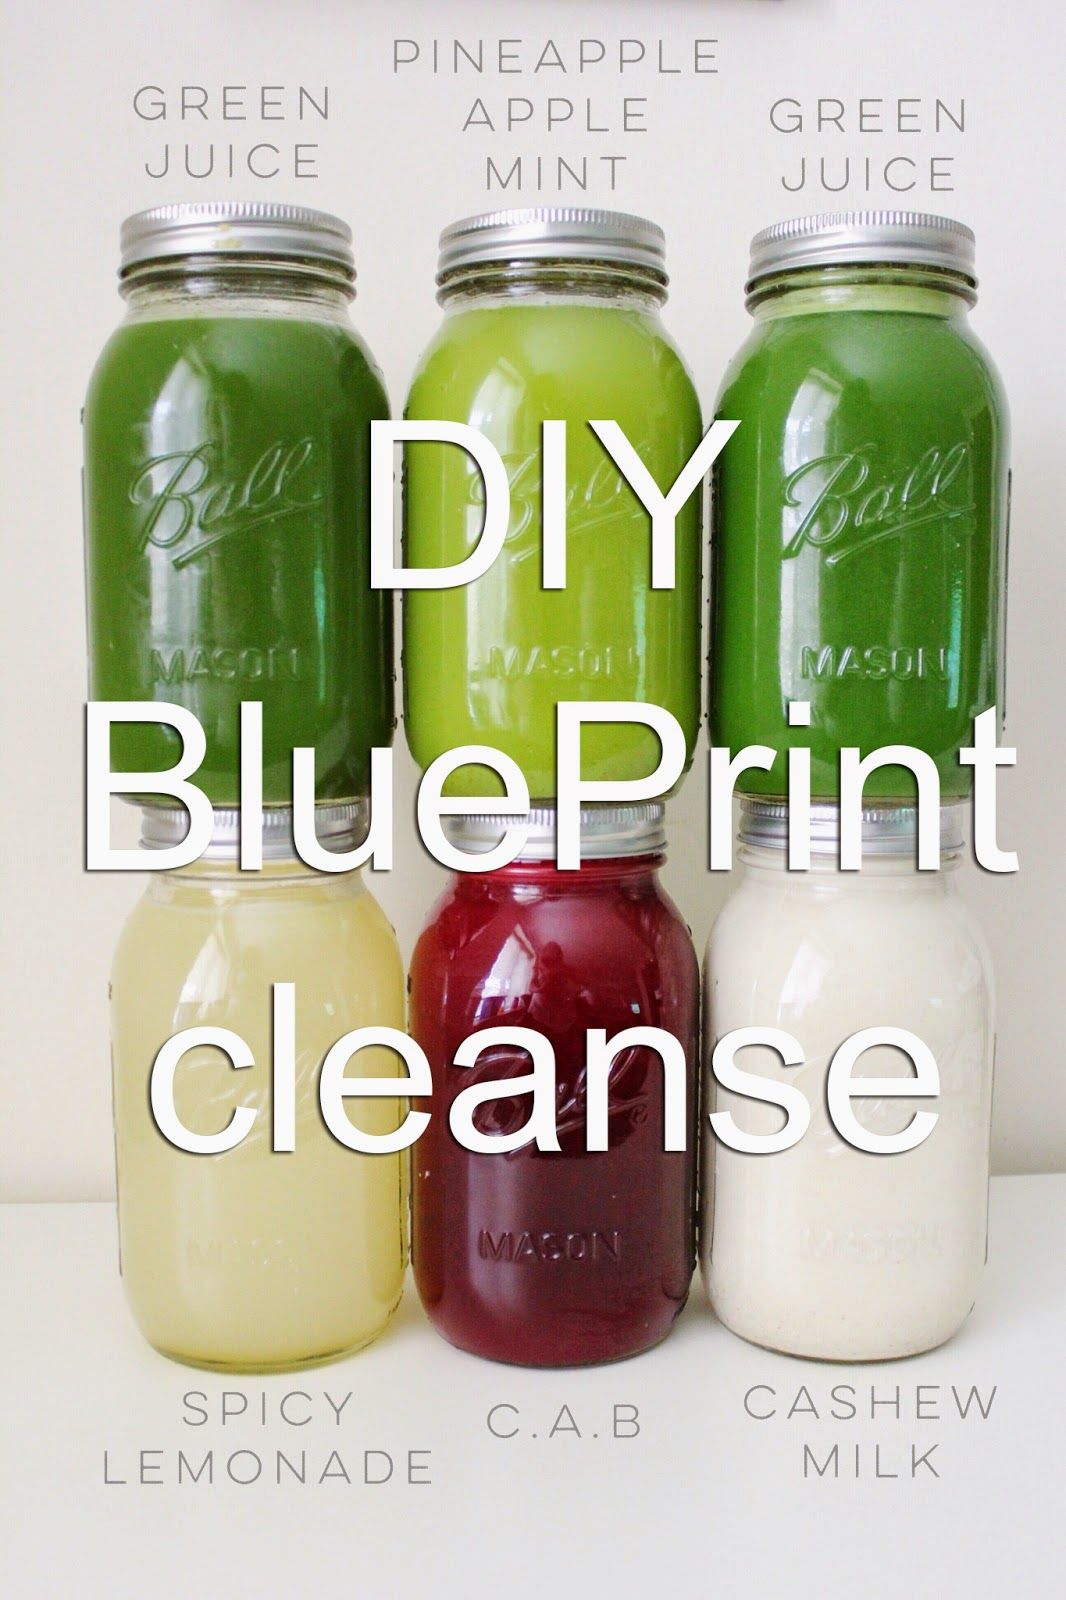 Updated diy 3 day blueprint cleanse fresh juices pinterest updated diy 3 day blueprint cleanse malvernweather Gallery